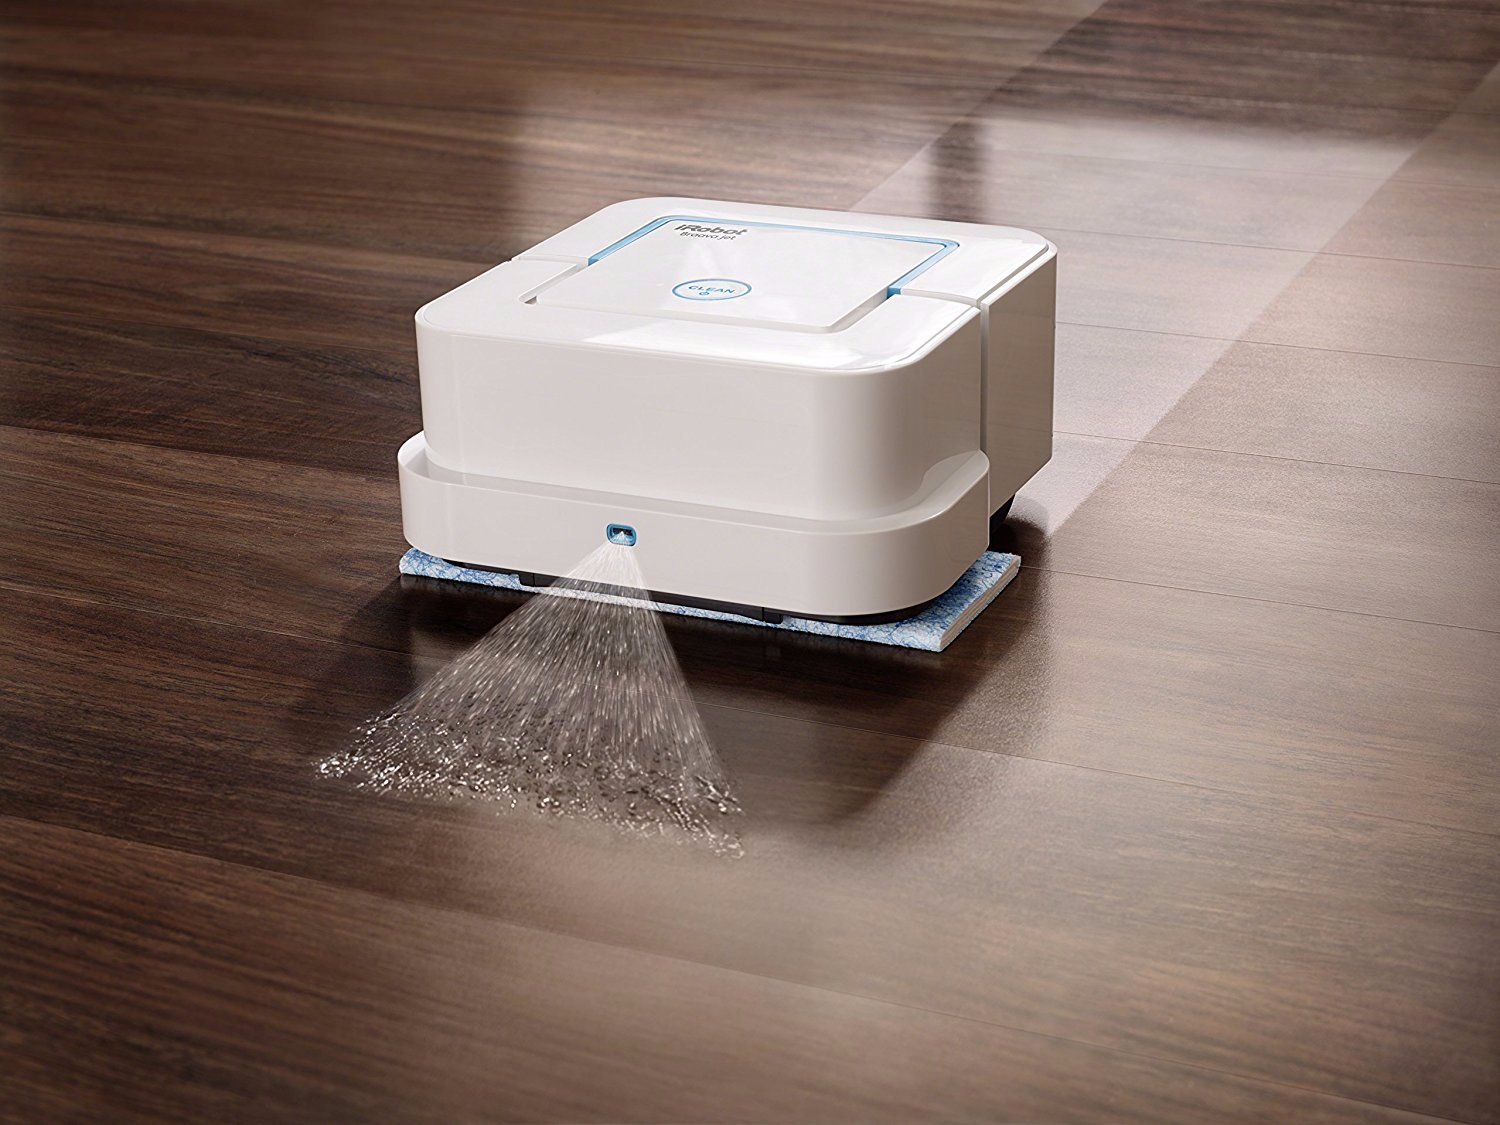 cleaning hardwood floors with vinegar of 12 smart home gadgets that practically clean the house for you pertaining to keep scrolling to see how you can make your life a lot easier with these cleaning tools